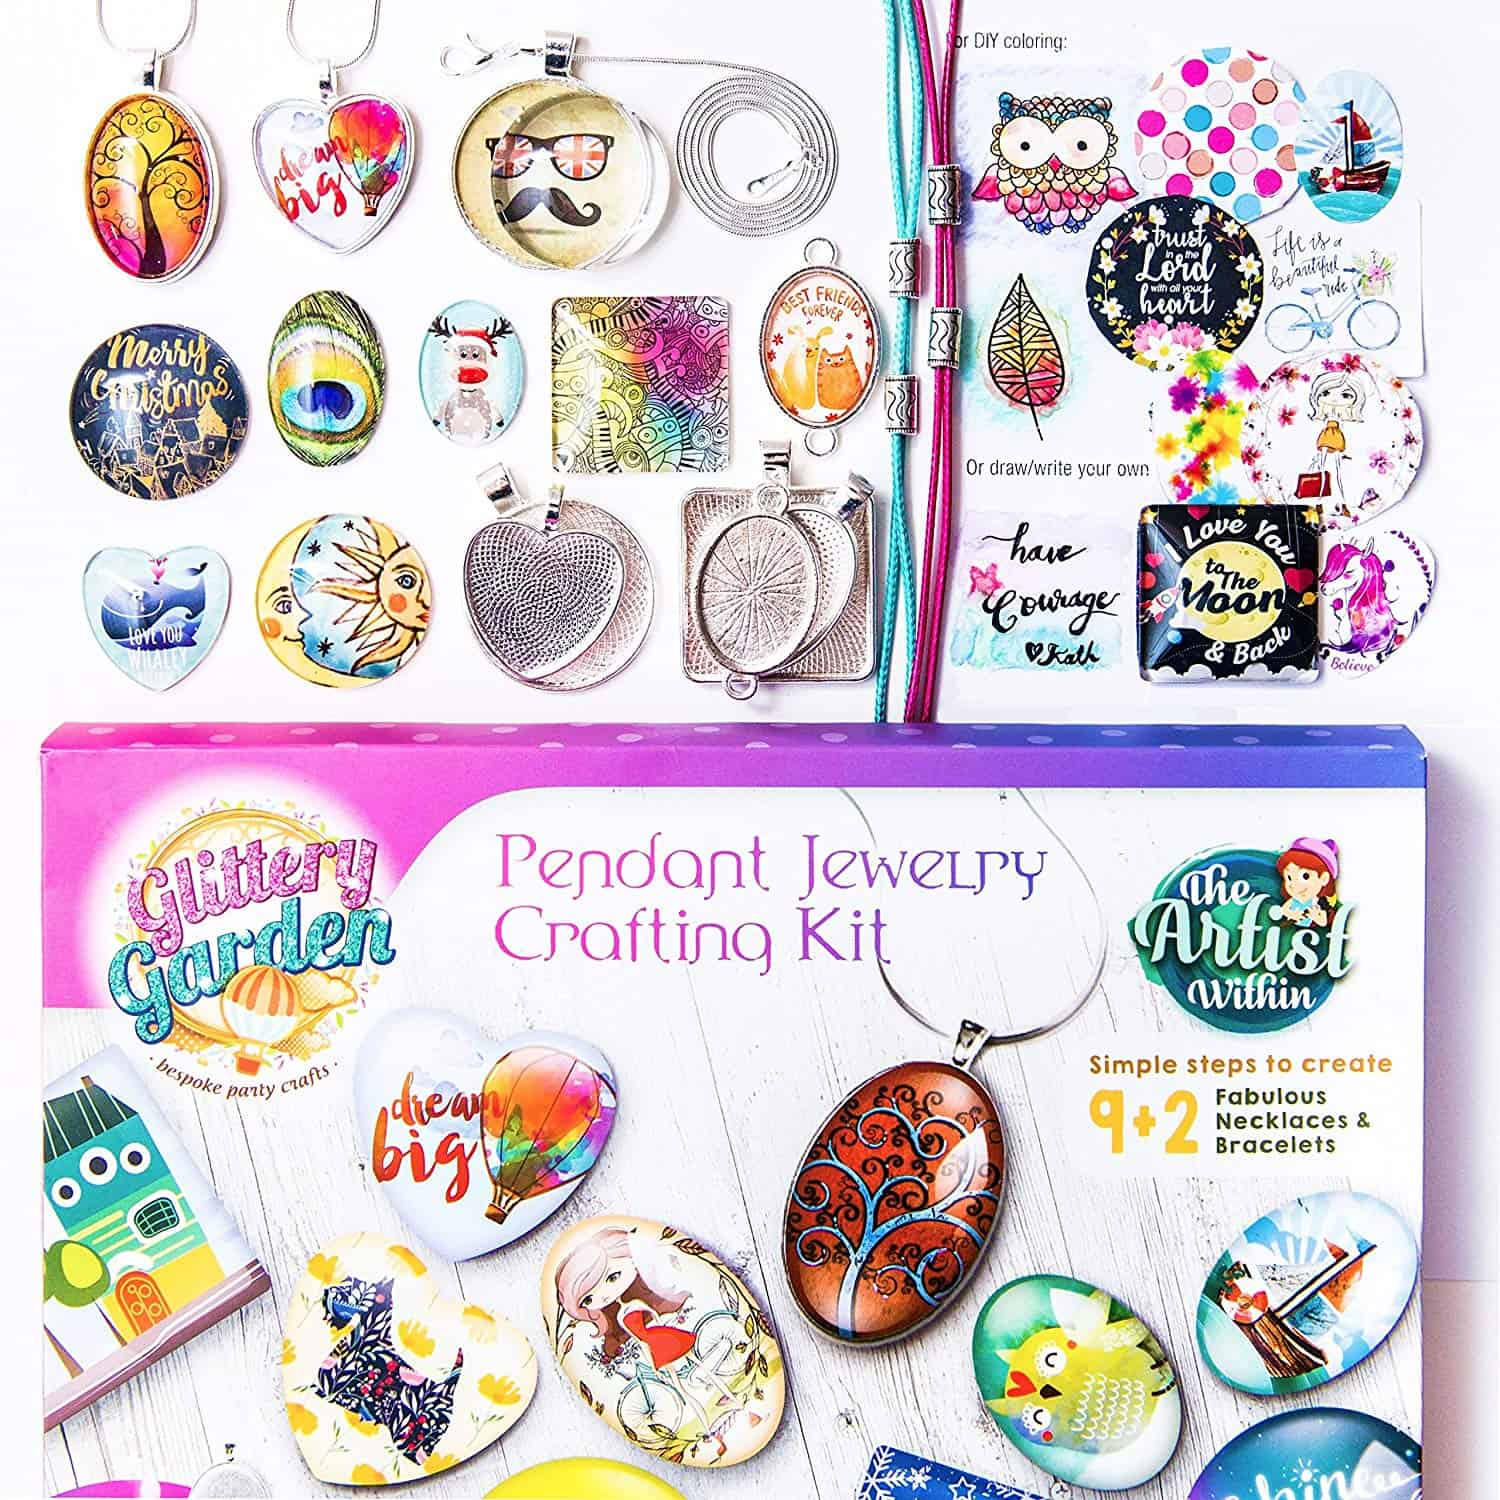 Diy necklace pendant and bracelet crafting set with glass beads and charms